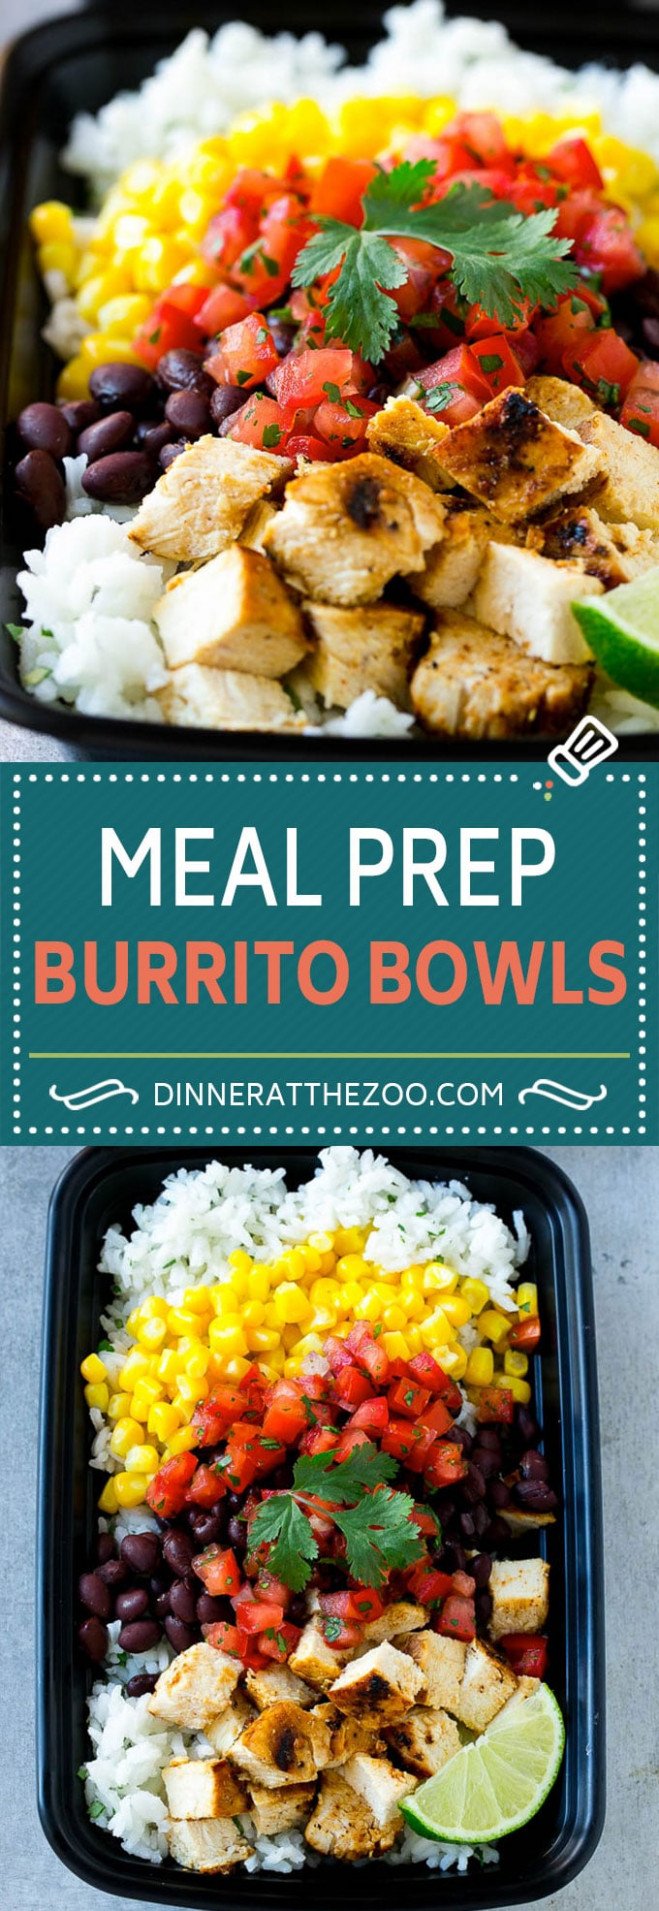 14 Easy Meal Prep Recipes - Dinner at the Zoo - healthy recipes meals